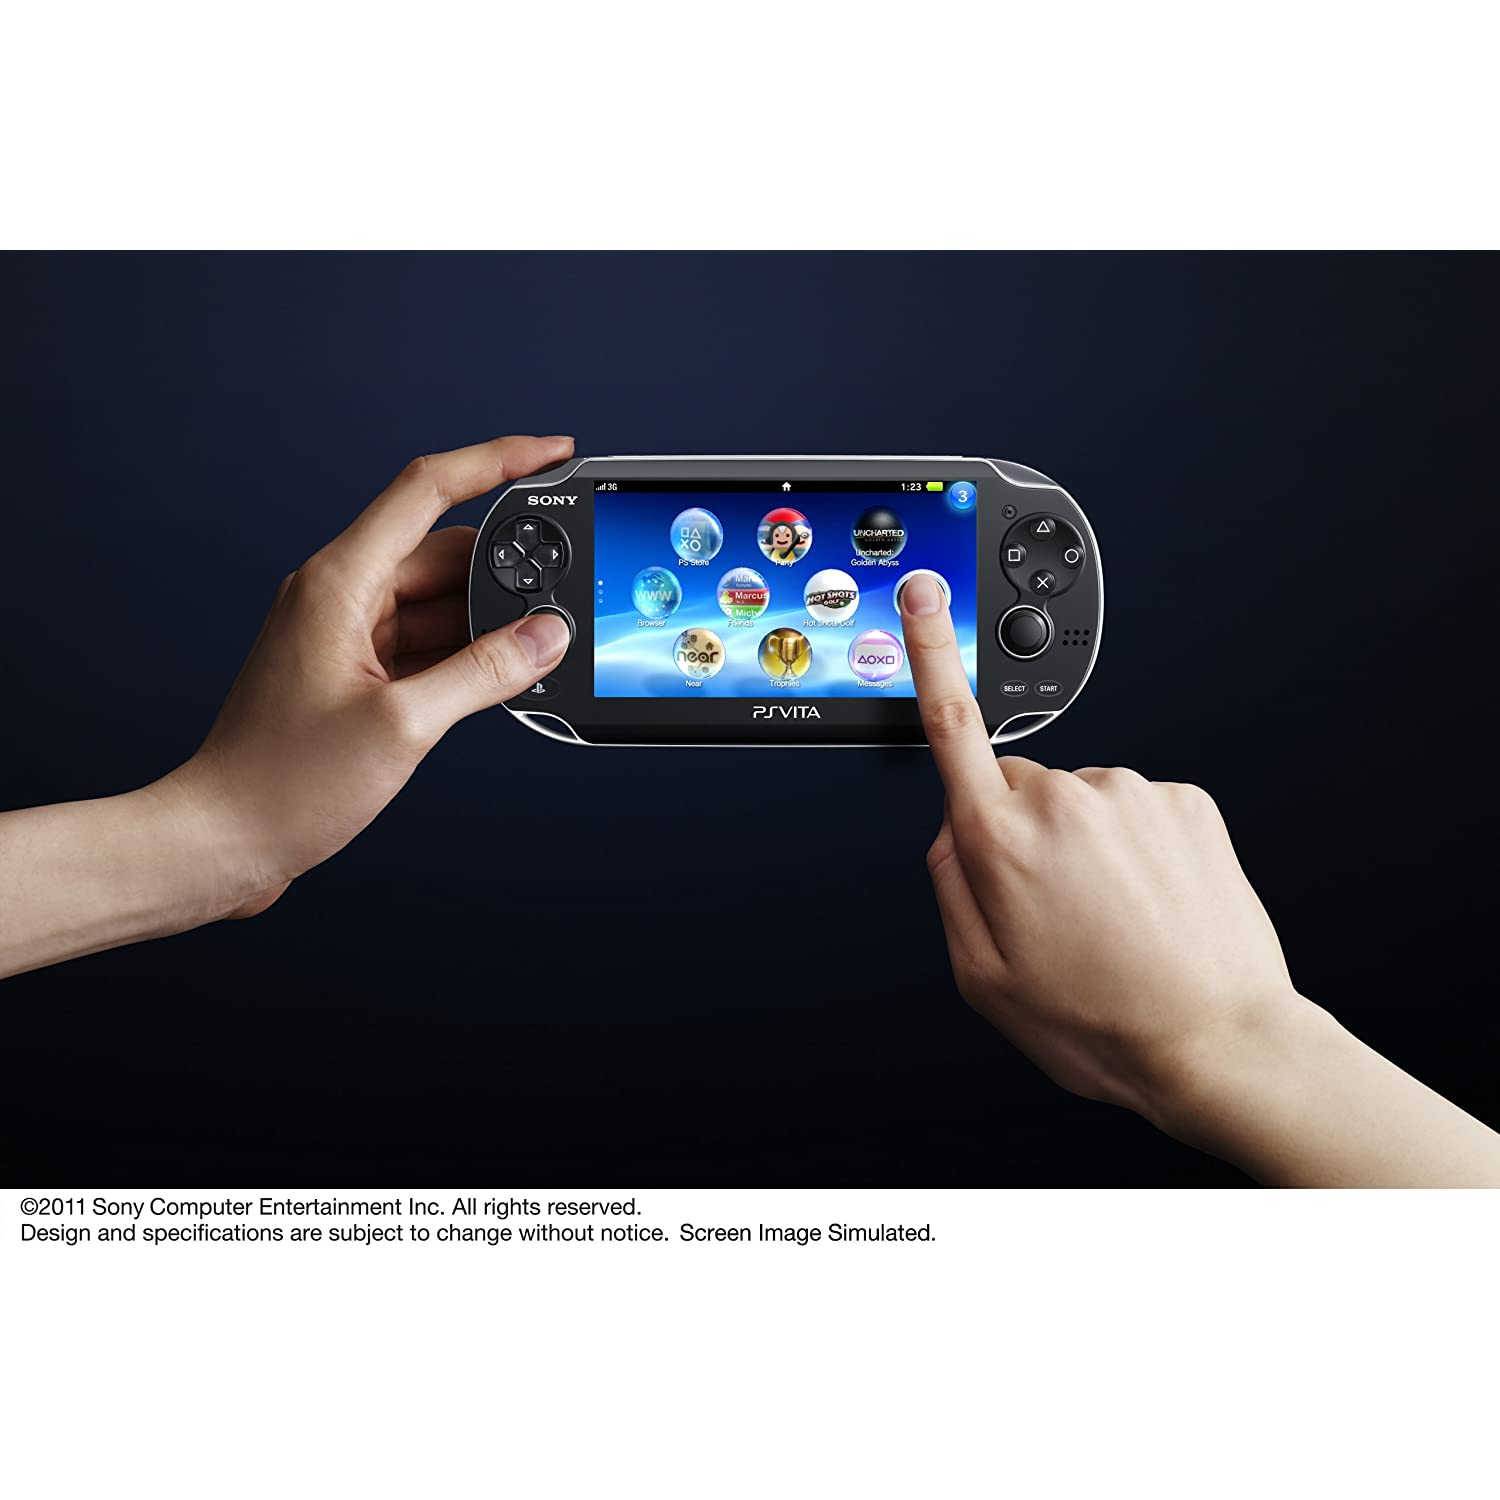 Online Game, Online Games, WiFi, Video Game, Video Games, PlayStation, Sony, Psp, Game Console, PlayStation Vita